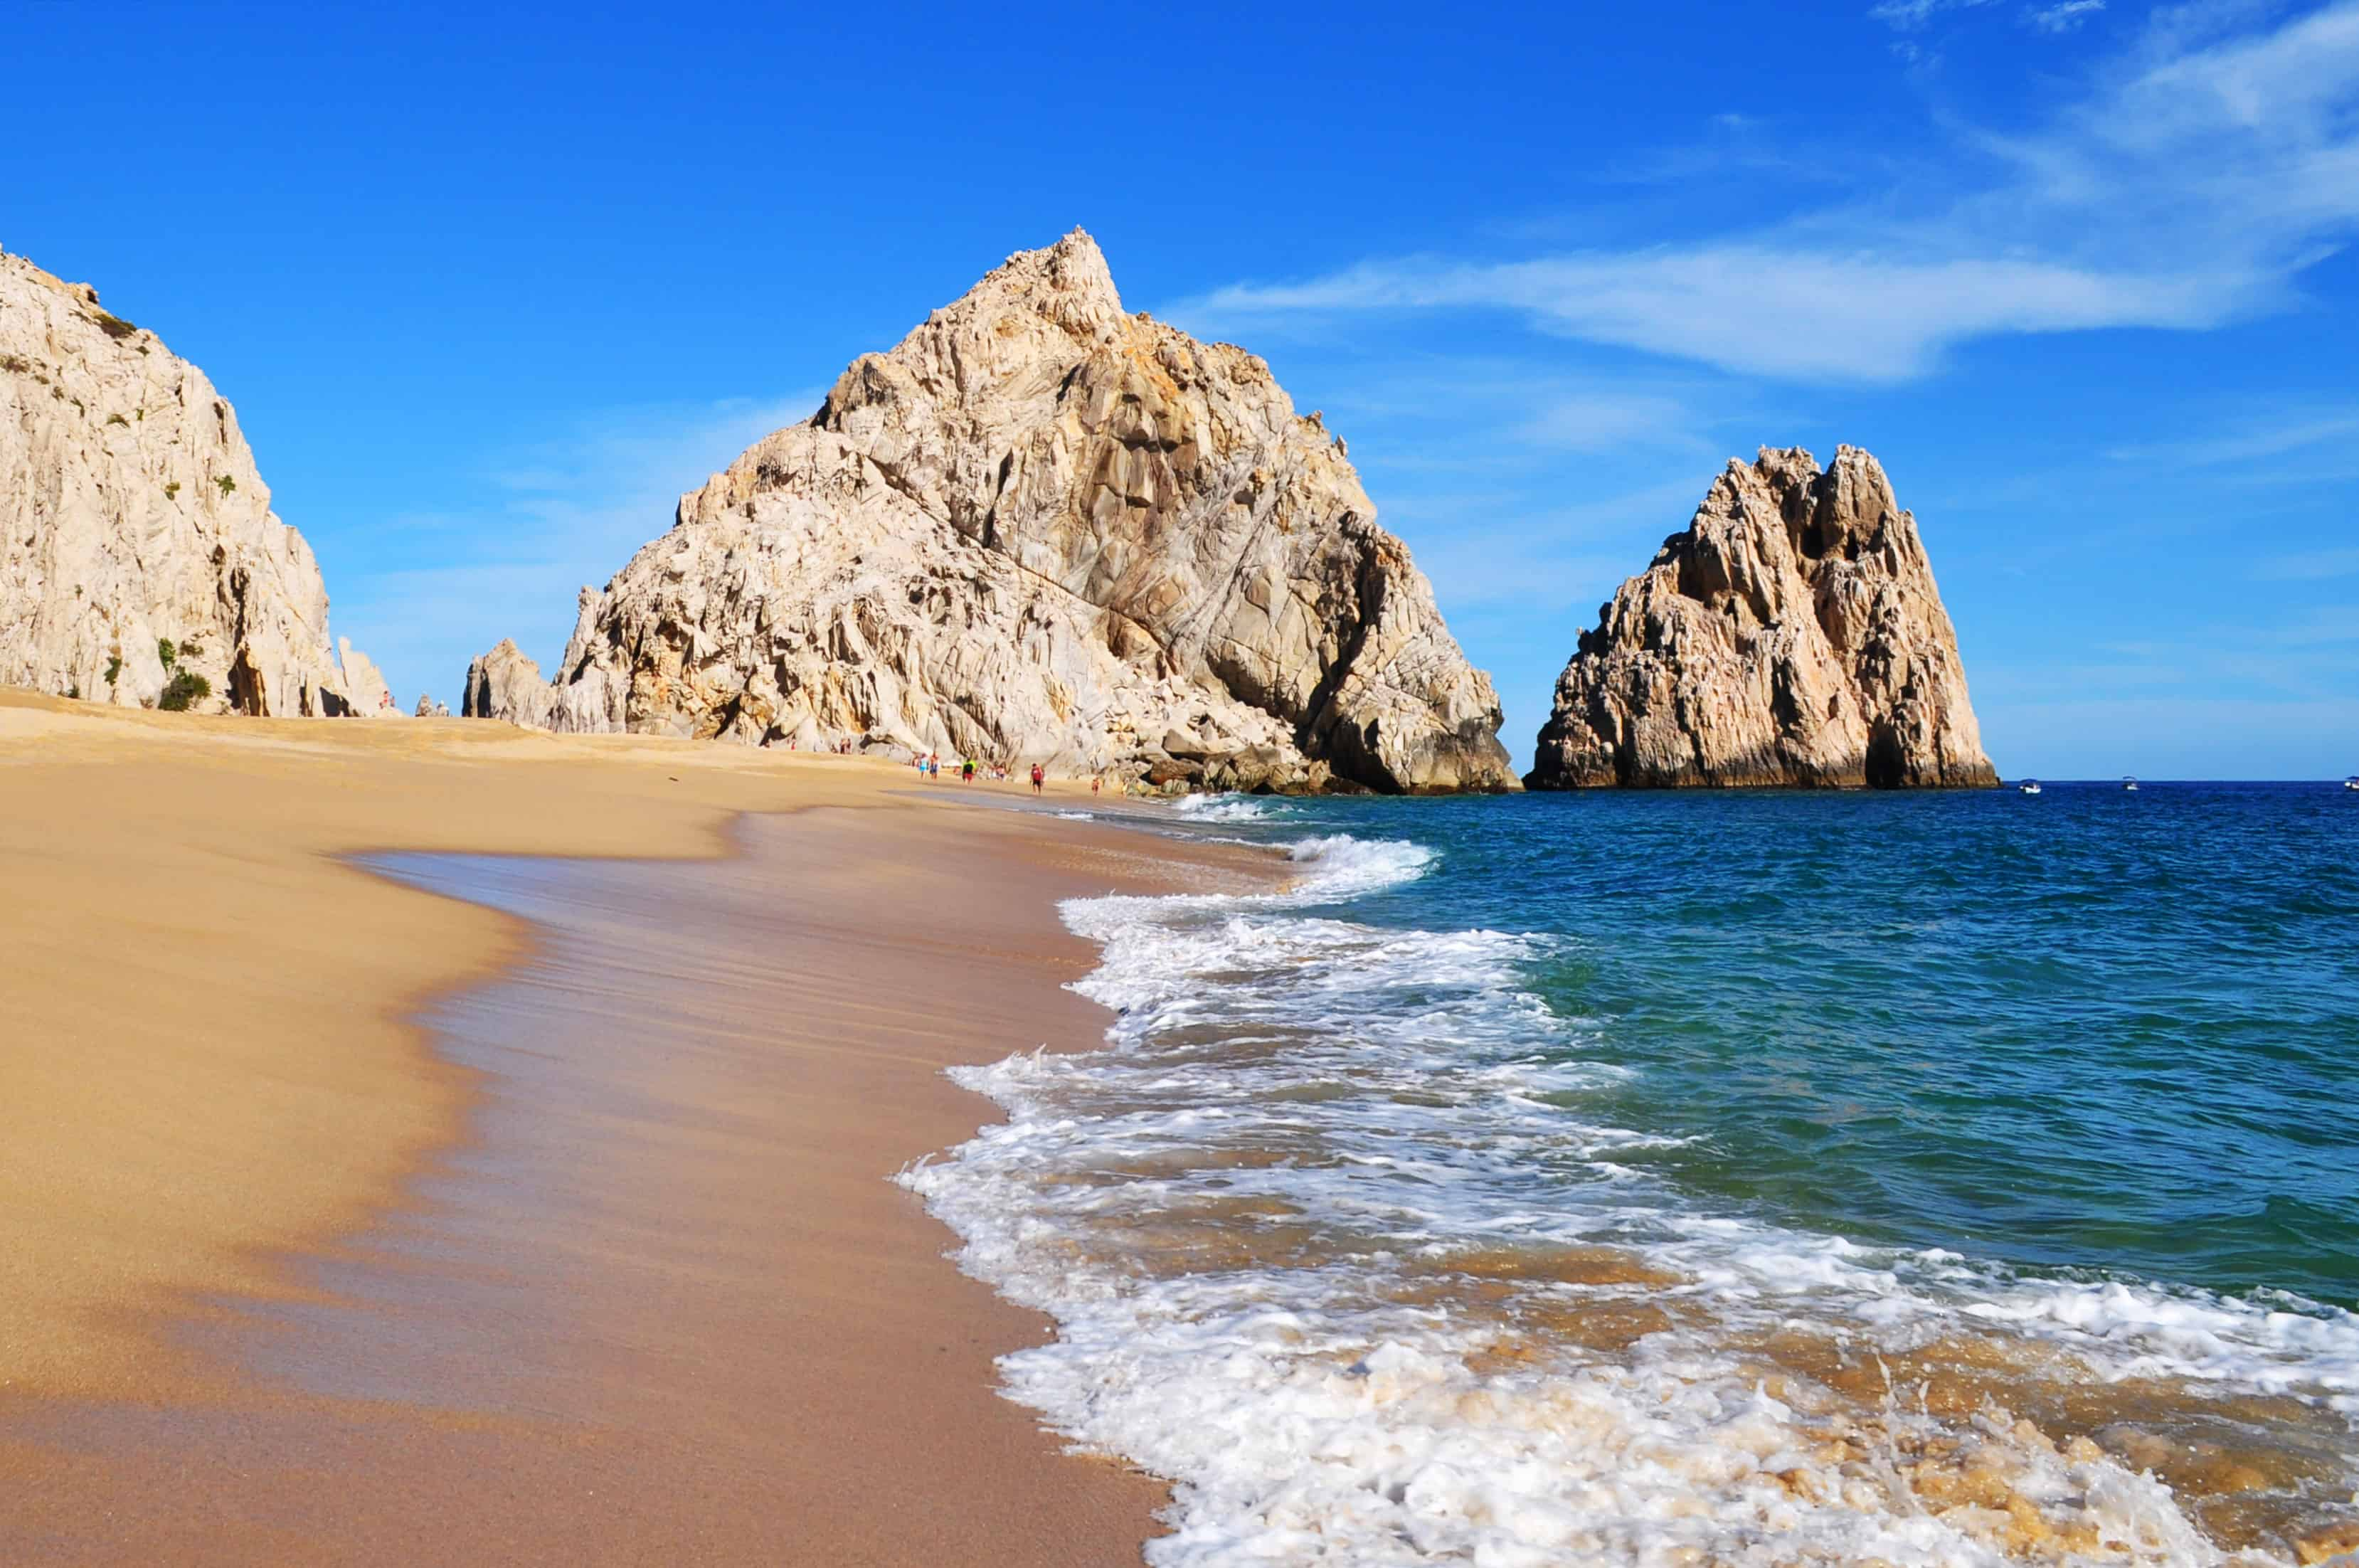 Playa del Amor or Lovers Beach, Cabo San Lucas, Baja California Sur, Mexico